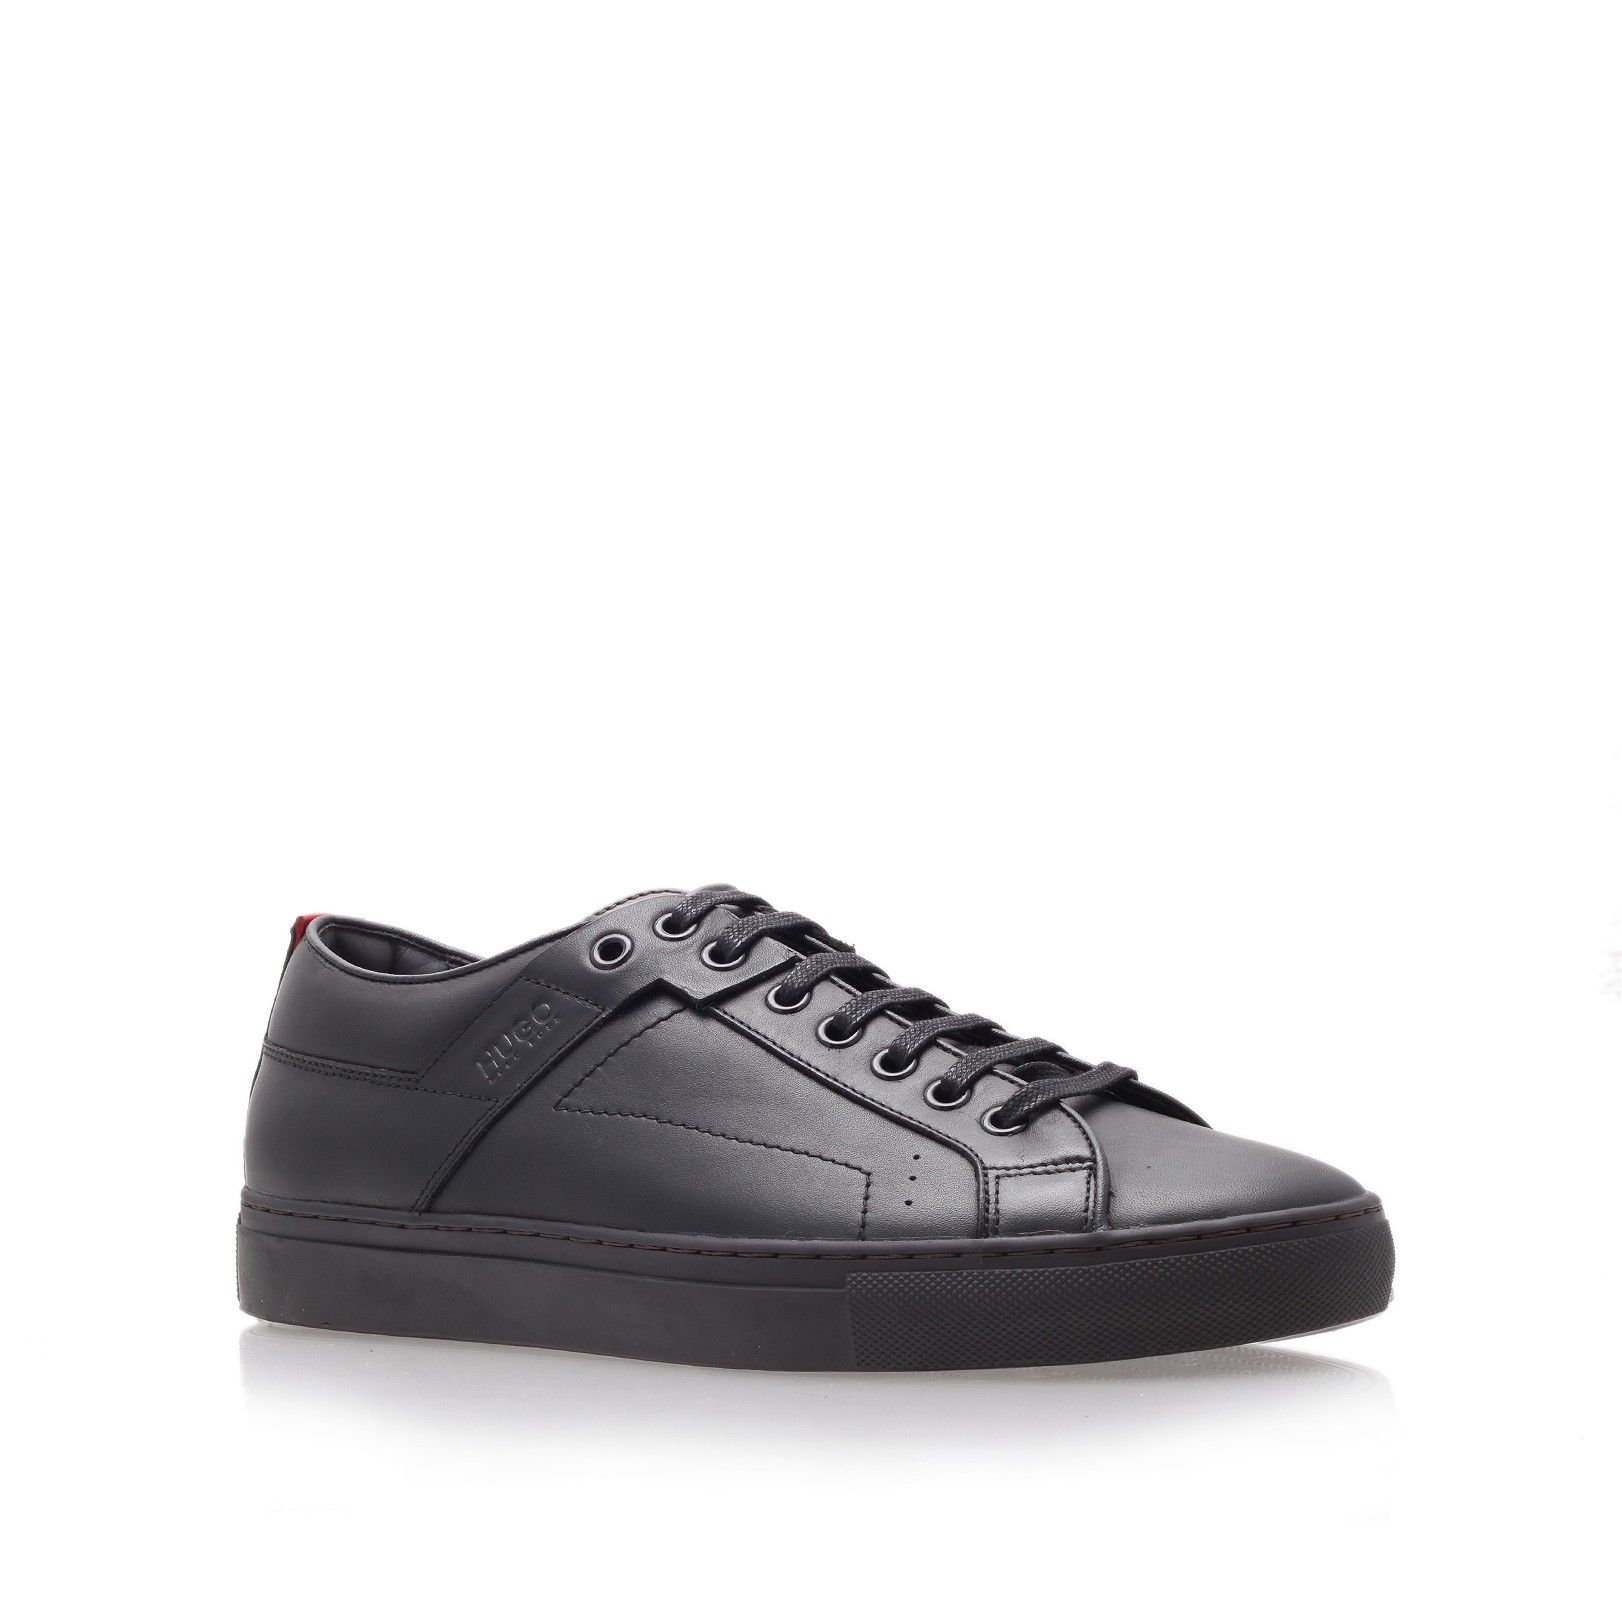 futesio tennis sneaker black casual low top trainers from Hugo Boss